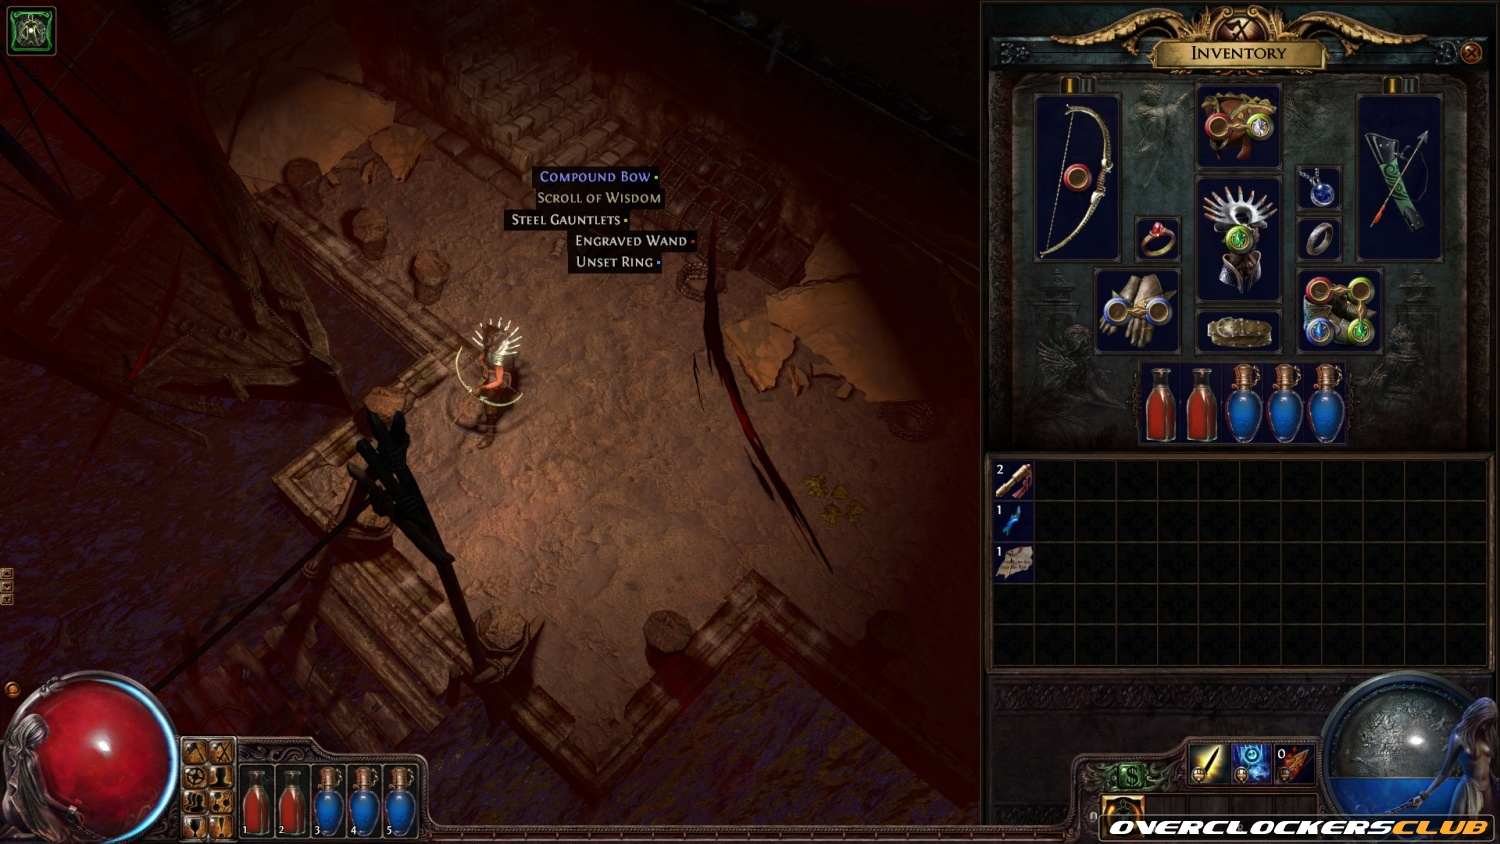 Path of Exile: Sacrifice of the Vaal's Second Teaser Screenshot Shows the Addition of Socketed Jewelry